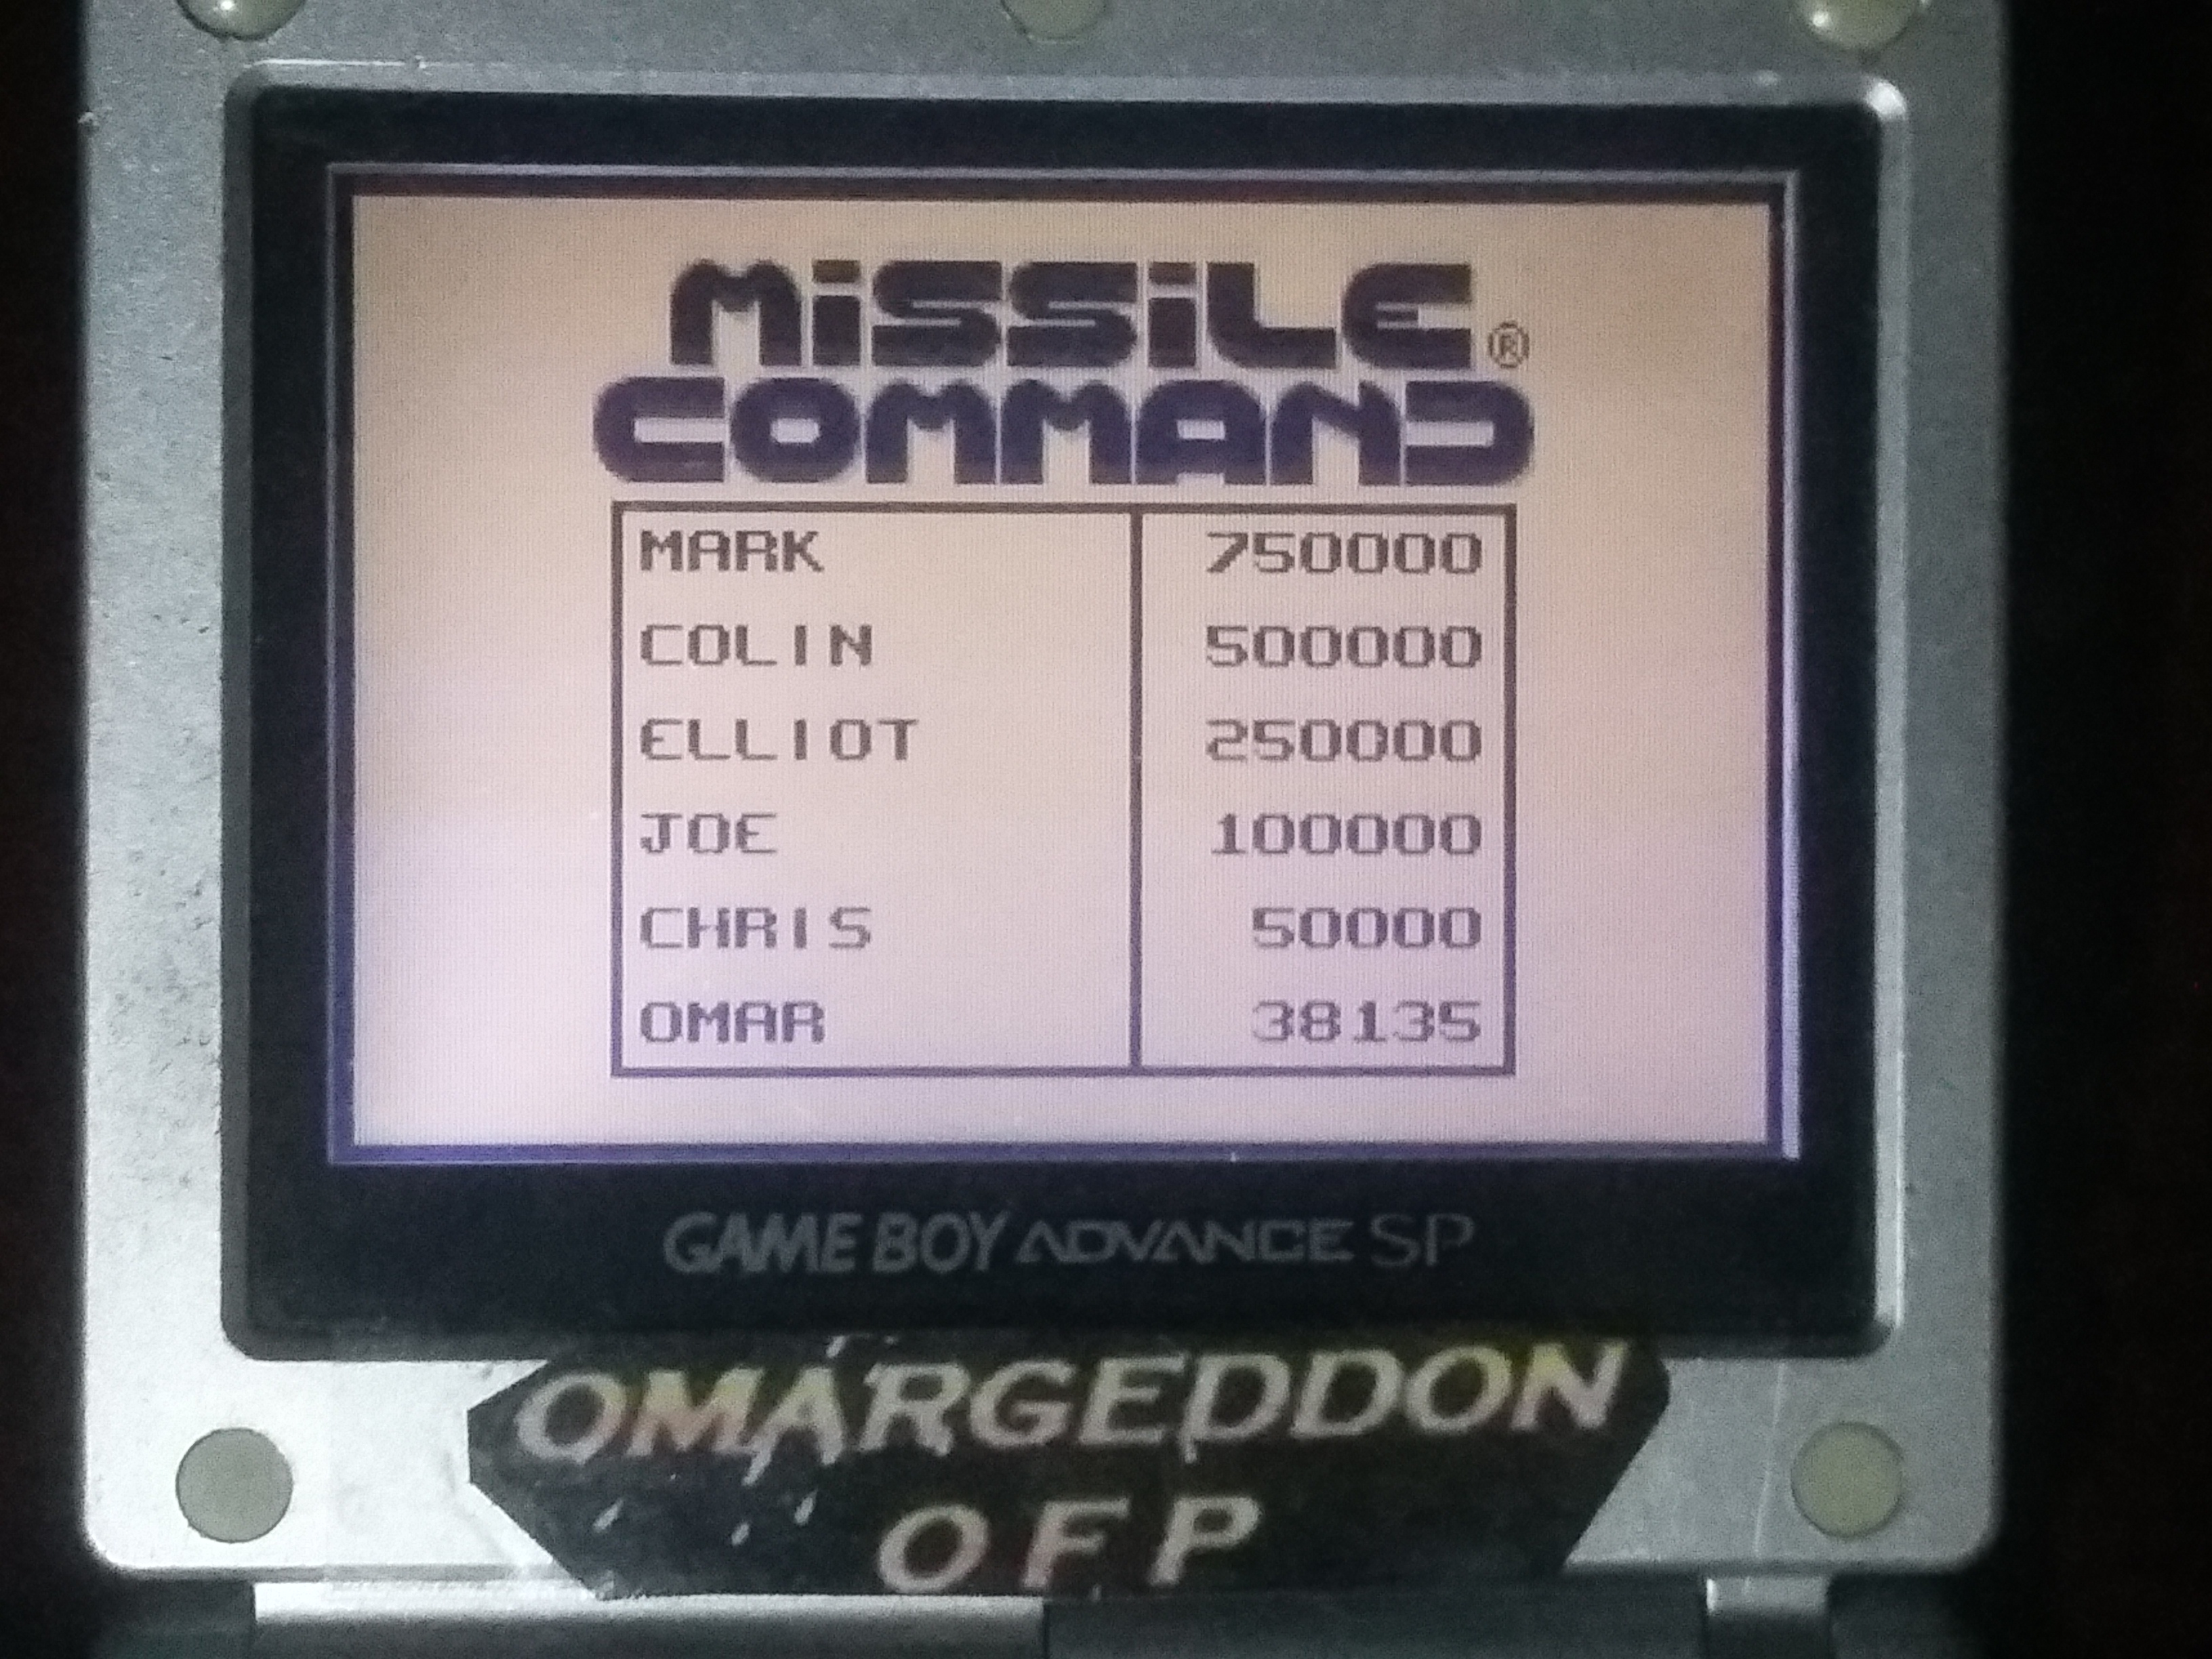 omargeddon: Missile Command (Game Boy) 38,135 points on 2018-01-15 00:23:59